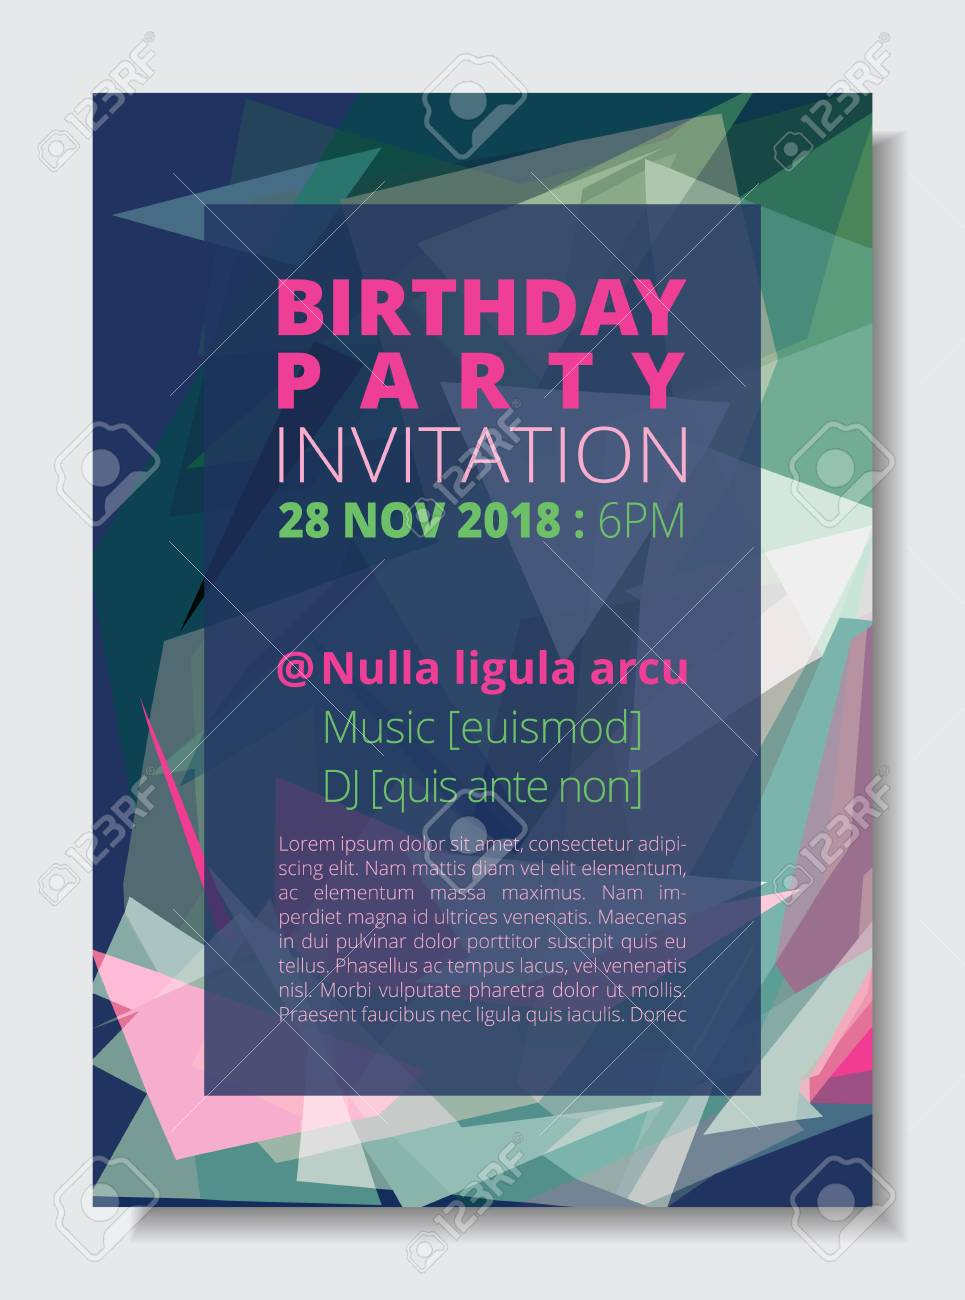 62a1ee3506f748 Birthday party invitation card template A4 size, colorful abstract low  polygon blue background. CMYK